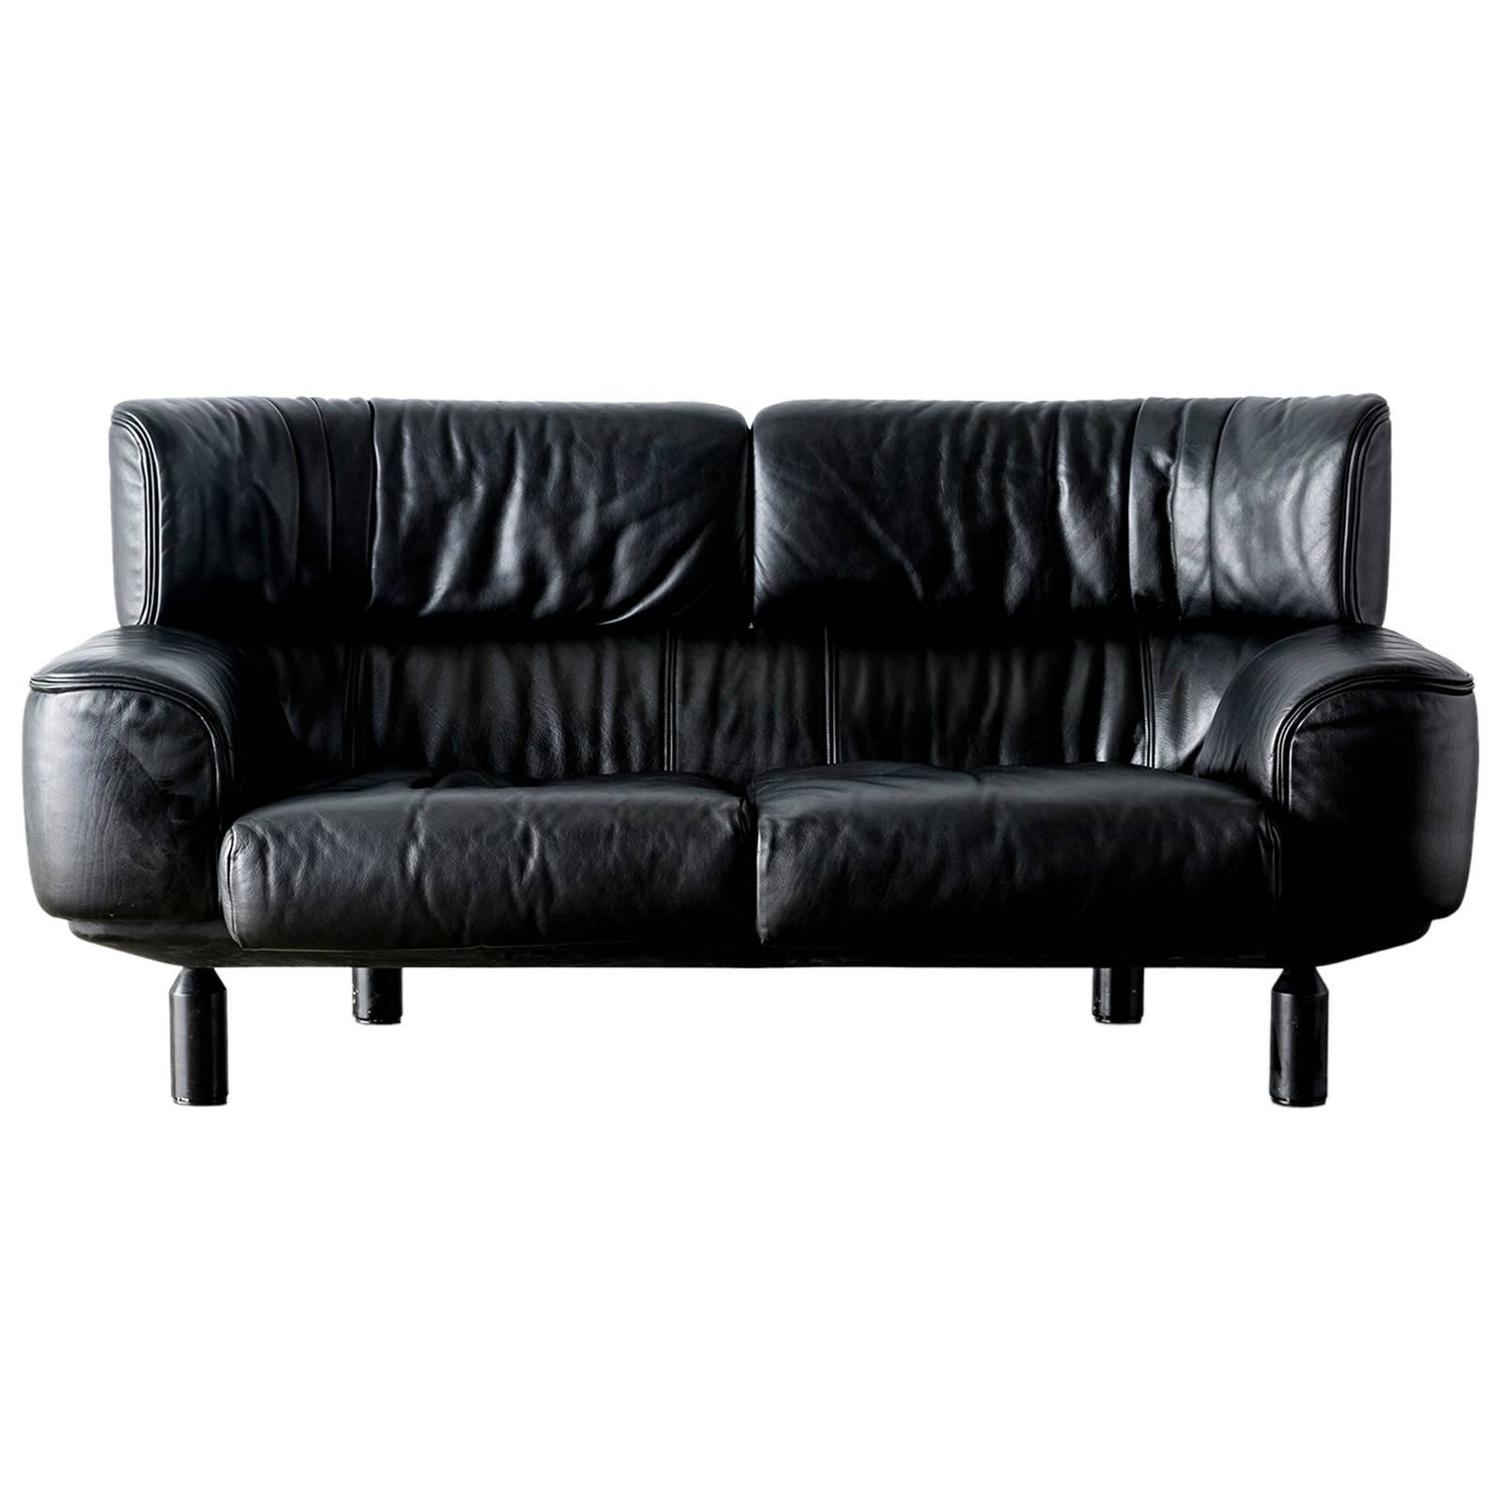 "Bull"" Black Leather Settee Sofa by Gianfranco Frattini for Cassina"